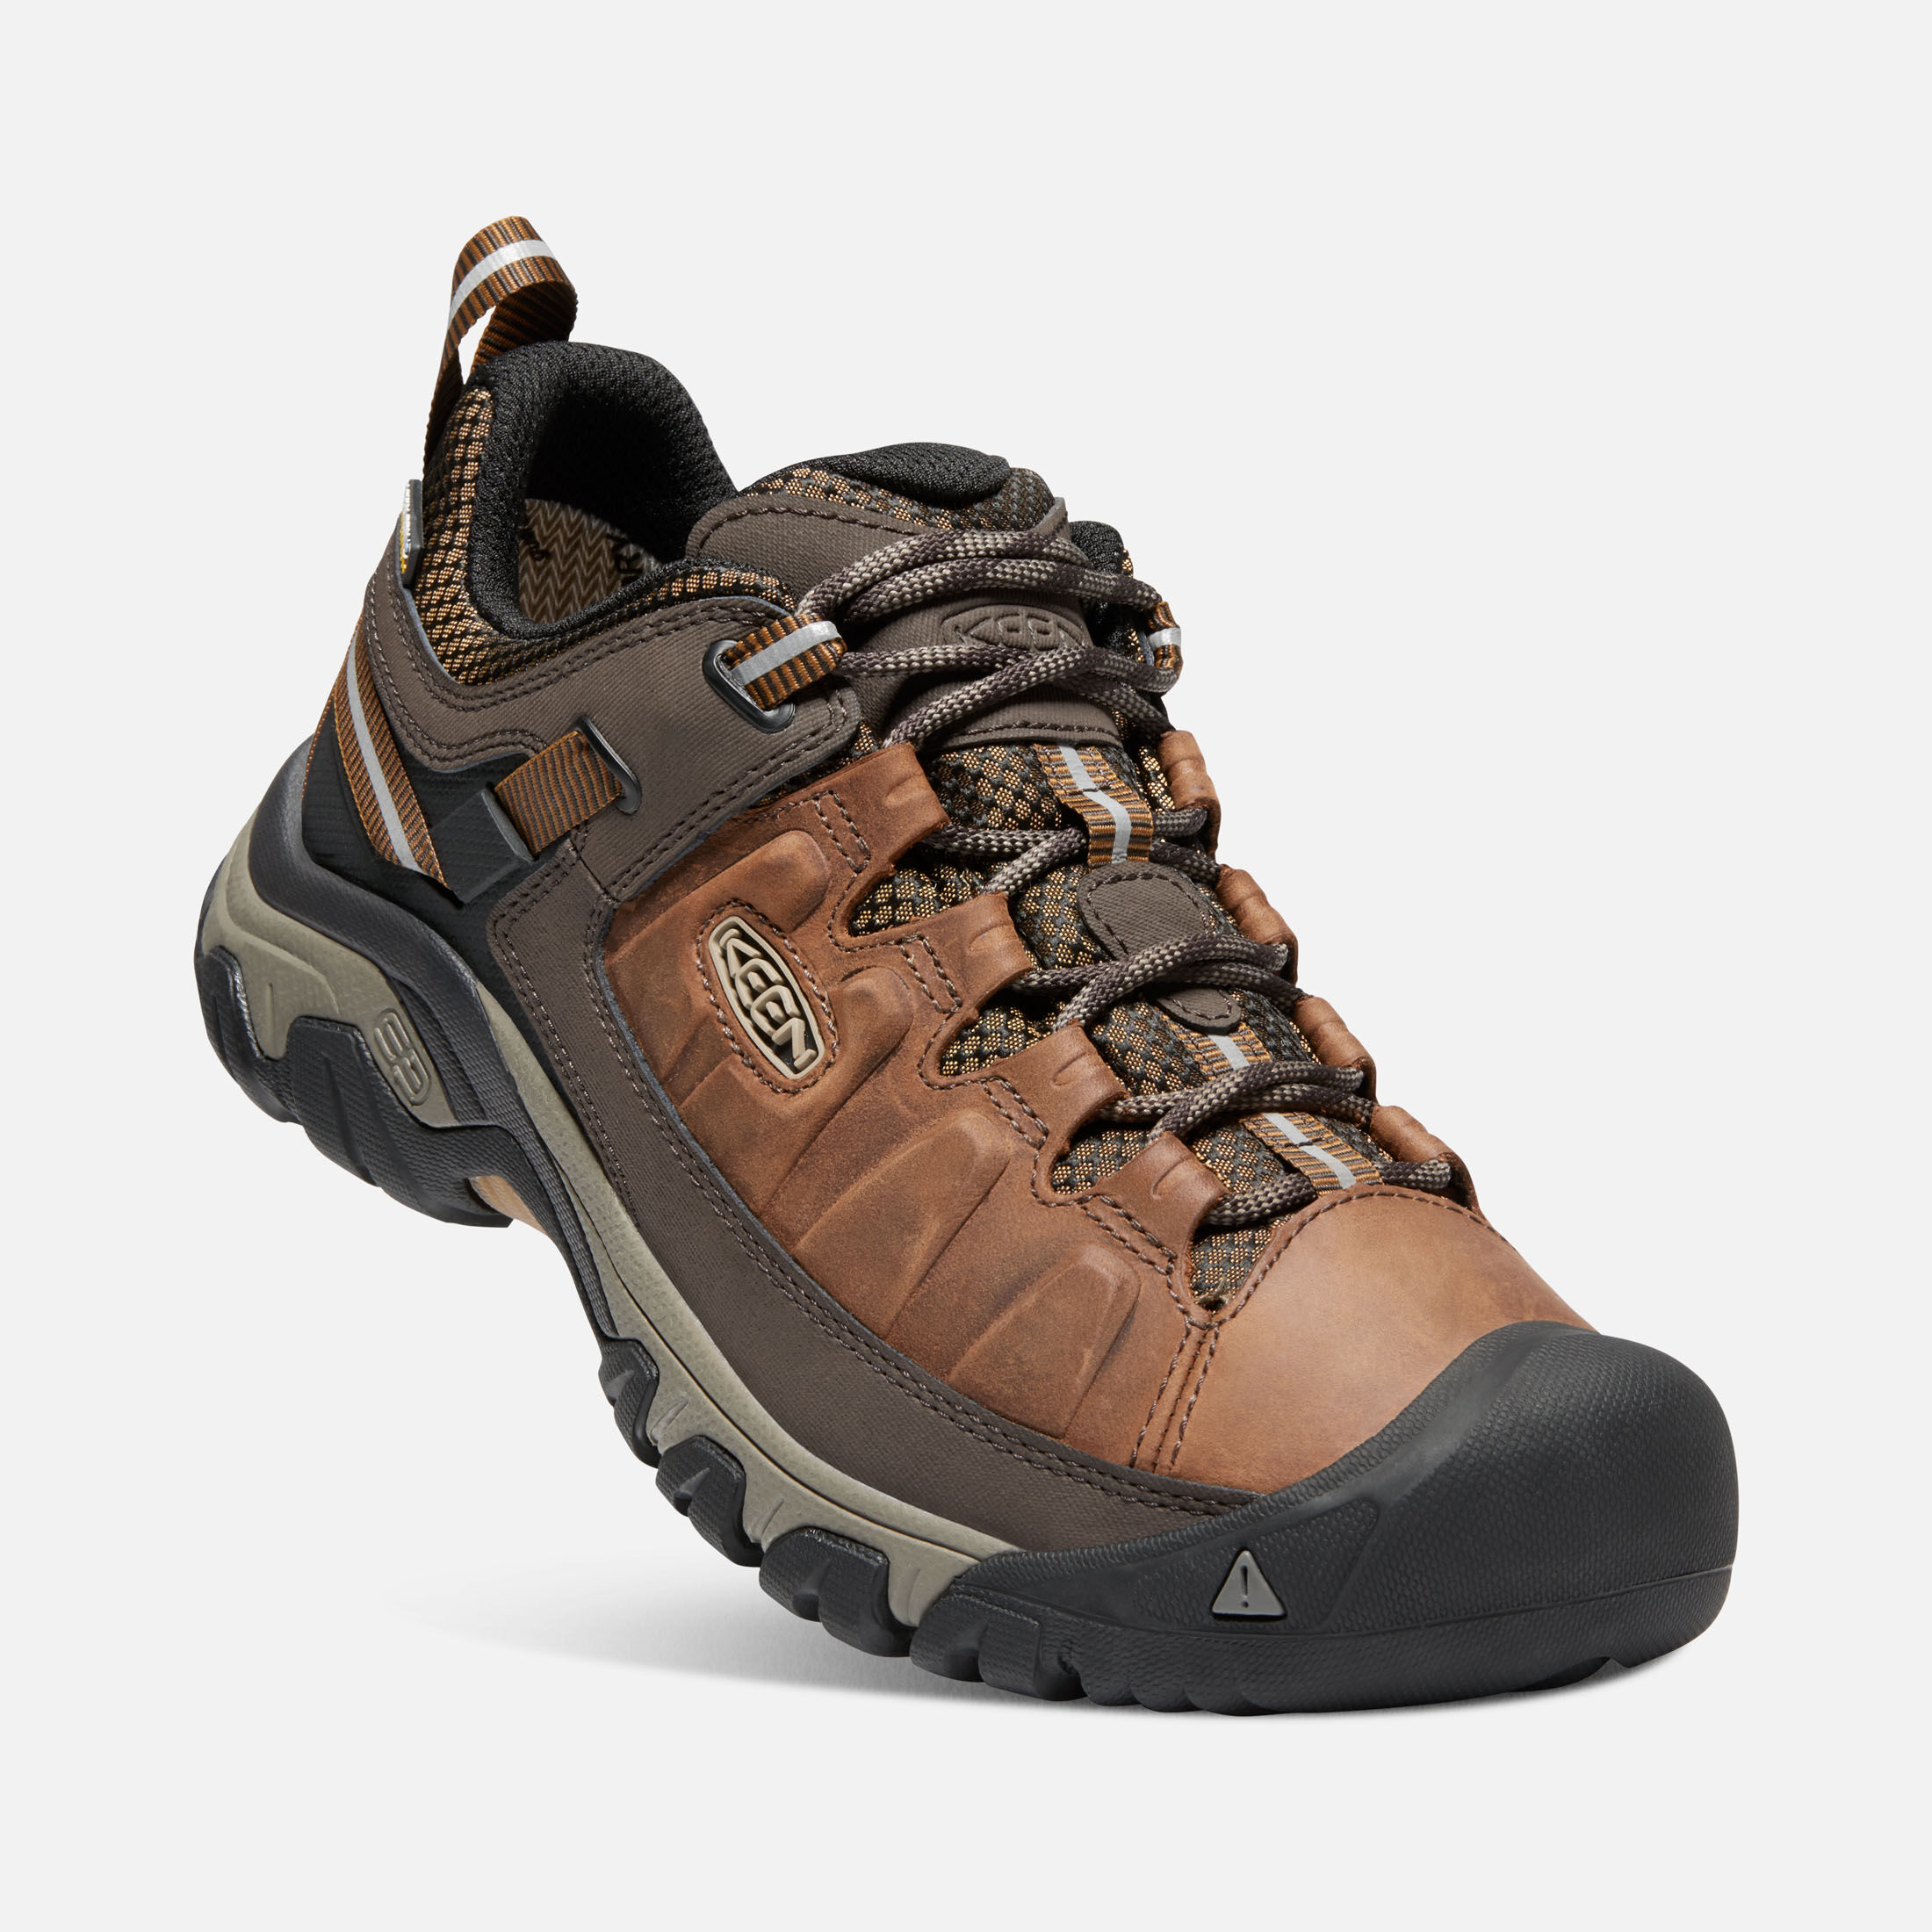 KEEN Targhee III WP Chaussures de randonnée big ben/golden brown 5xzVR